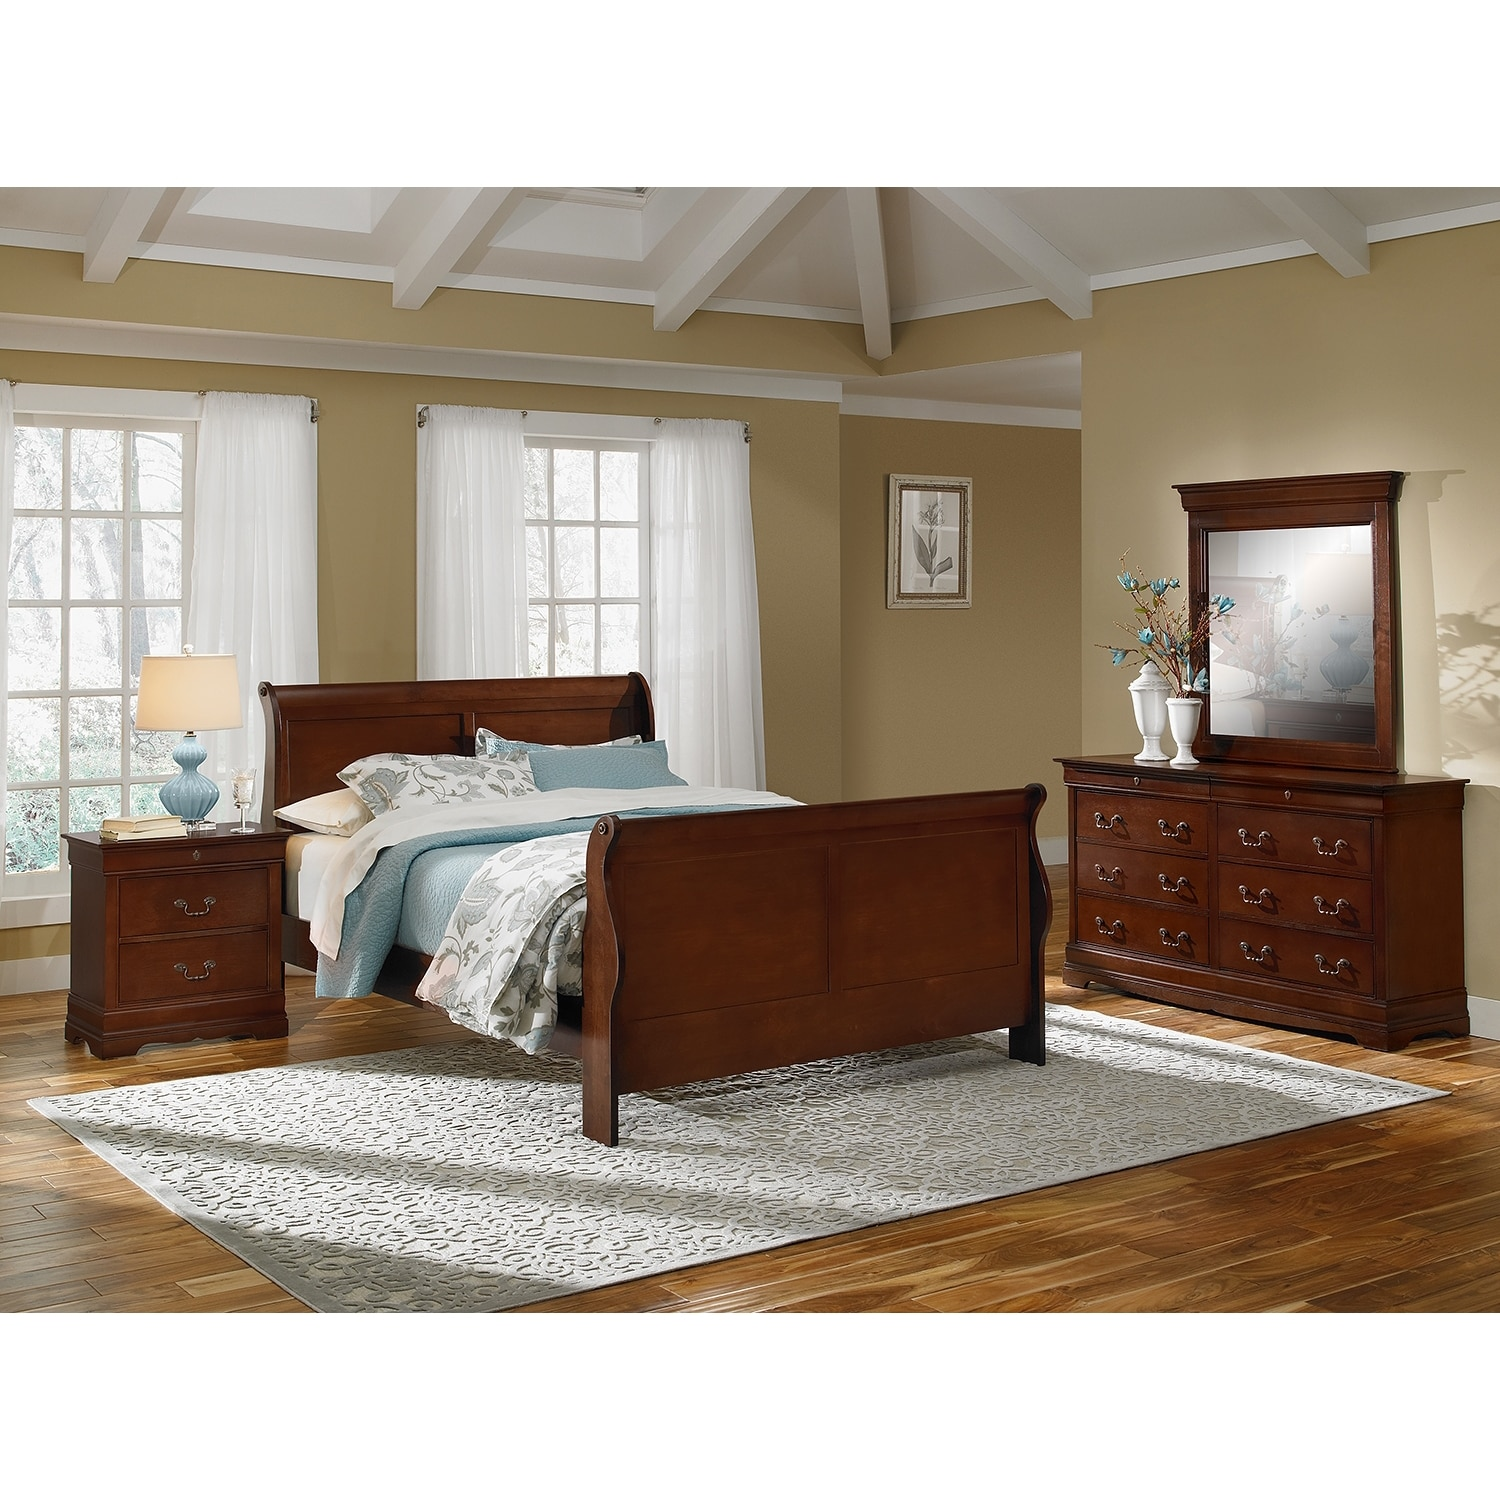 neo classic 6 piece king bedroom set cherry american signature furniture. Black Bedroom Furniture Sets. Home Design Ideas